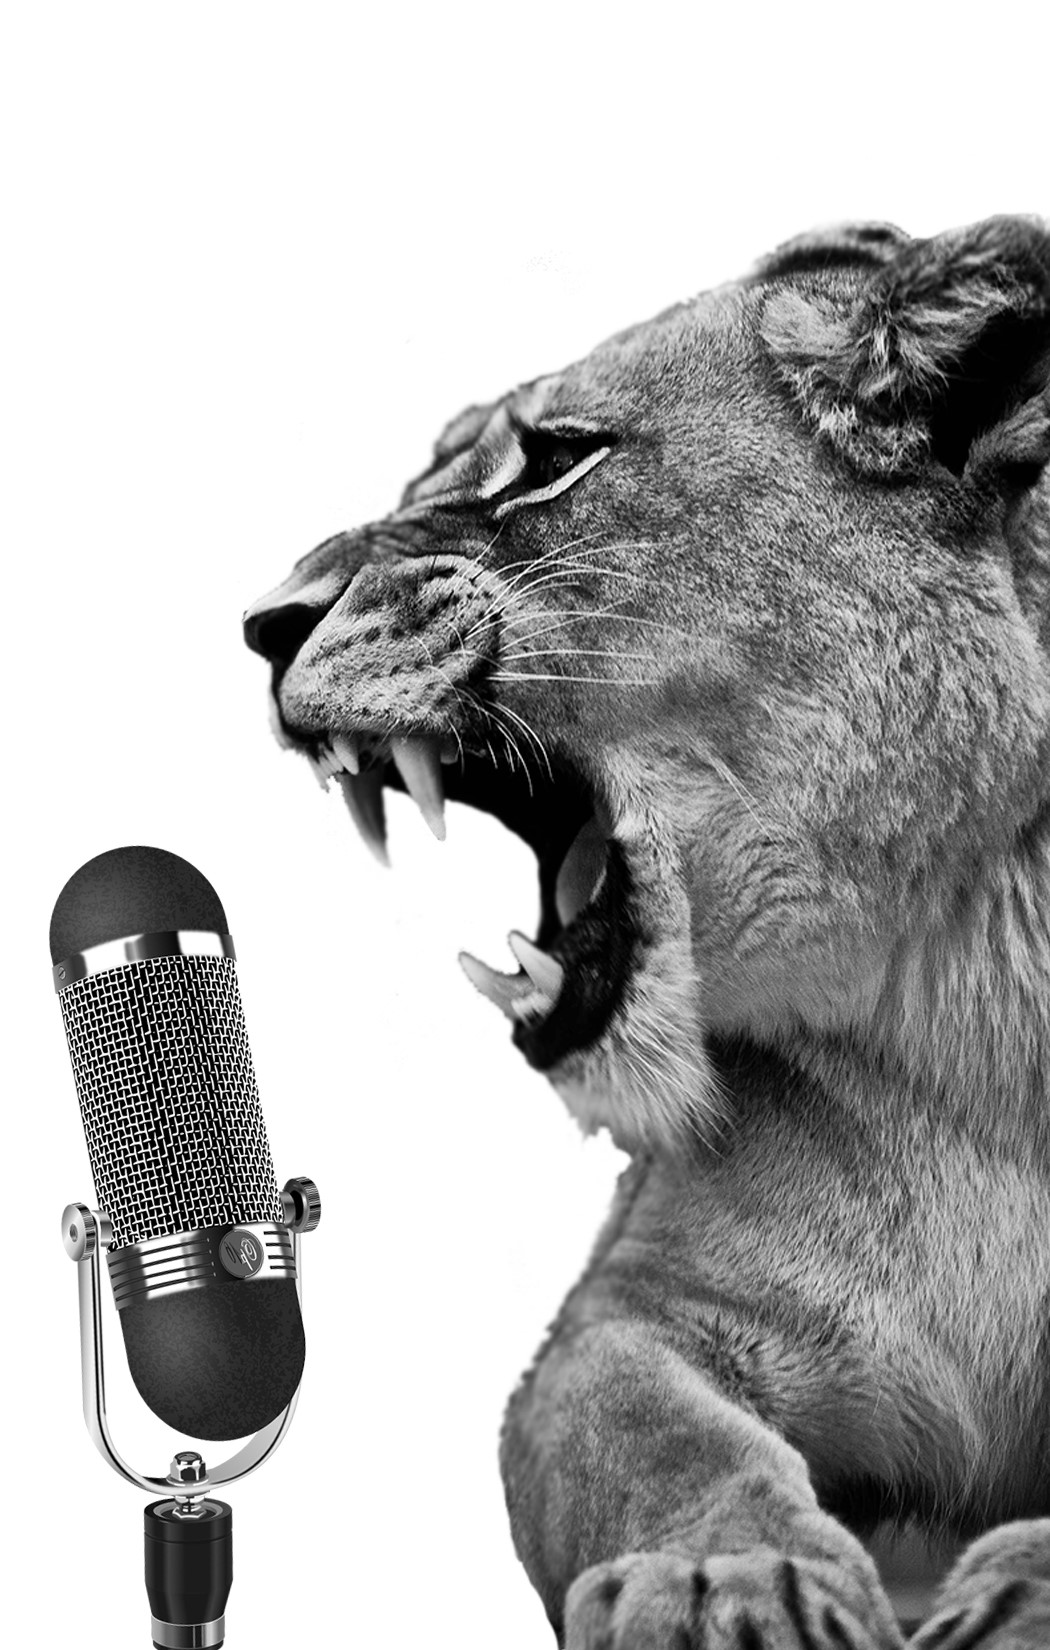 Podcasts - Rants & Roars, The Petting Zoo, and Relatively Random Podcasts can be found here!Looking for your weekly GAMING fix? That's probably here too!